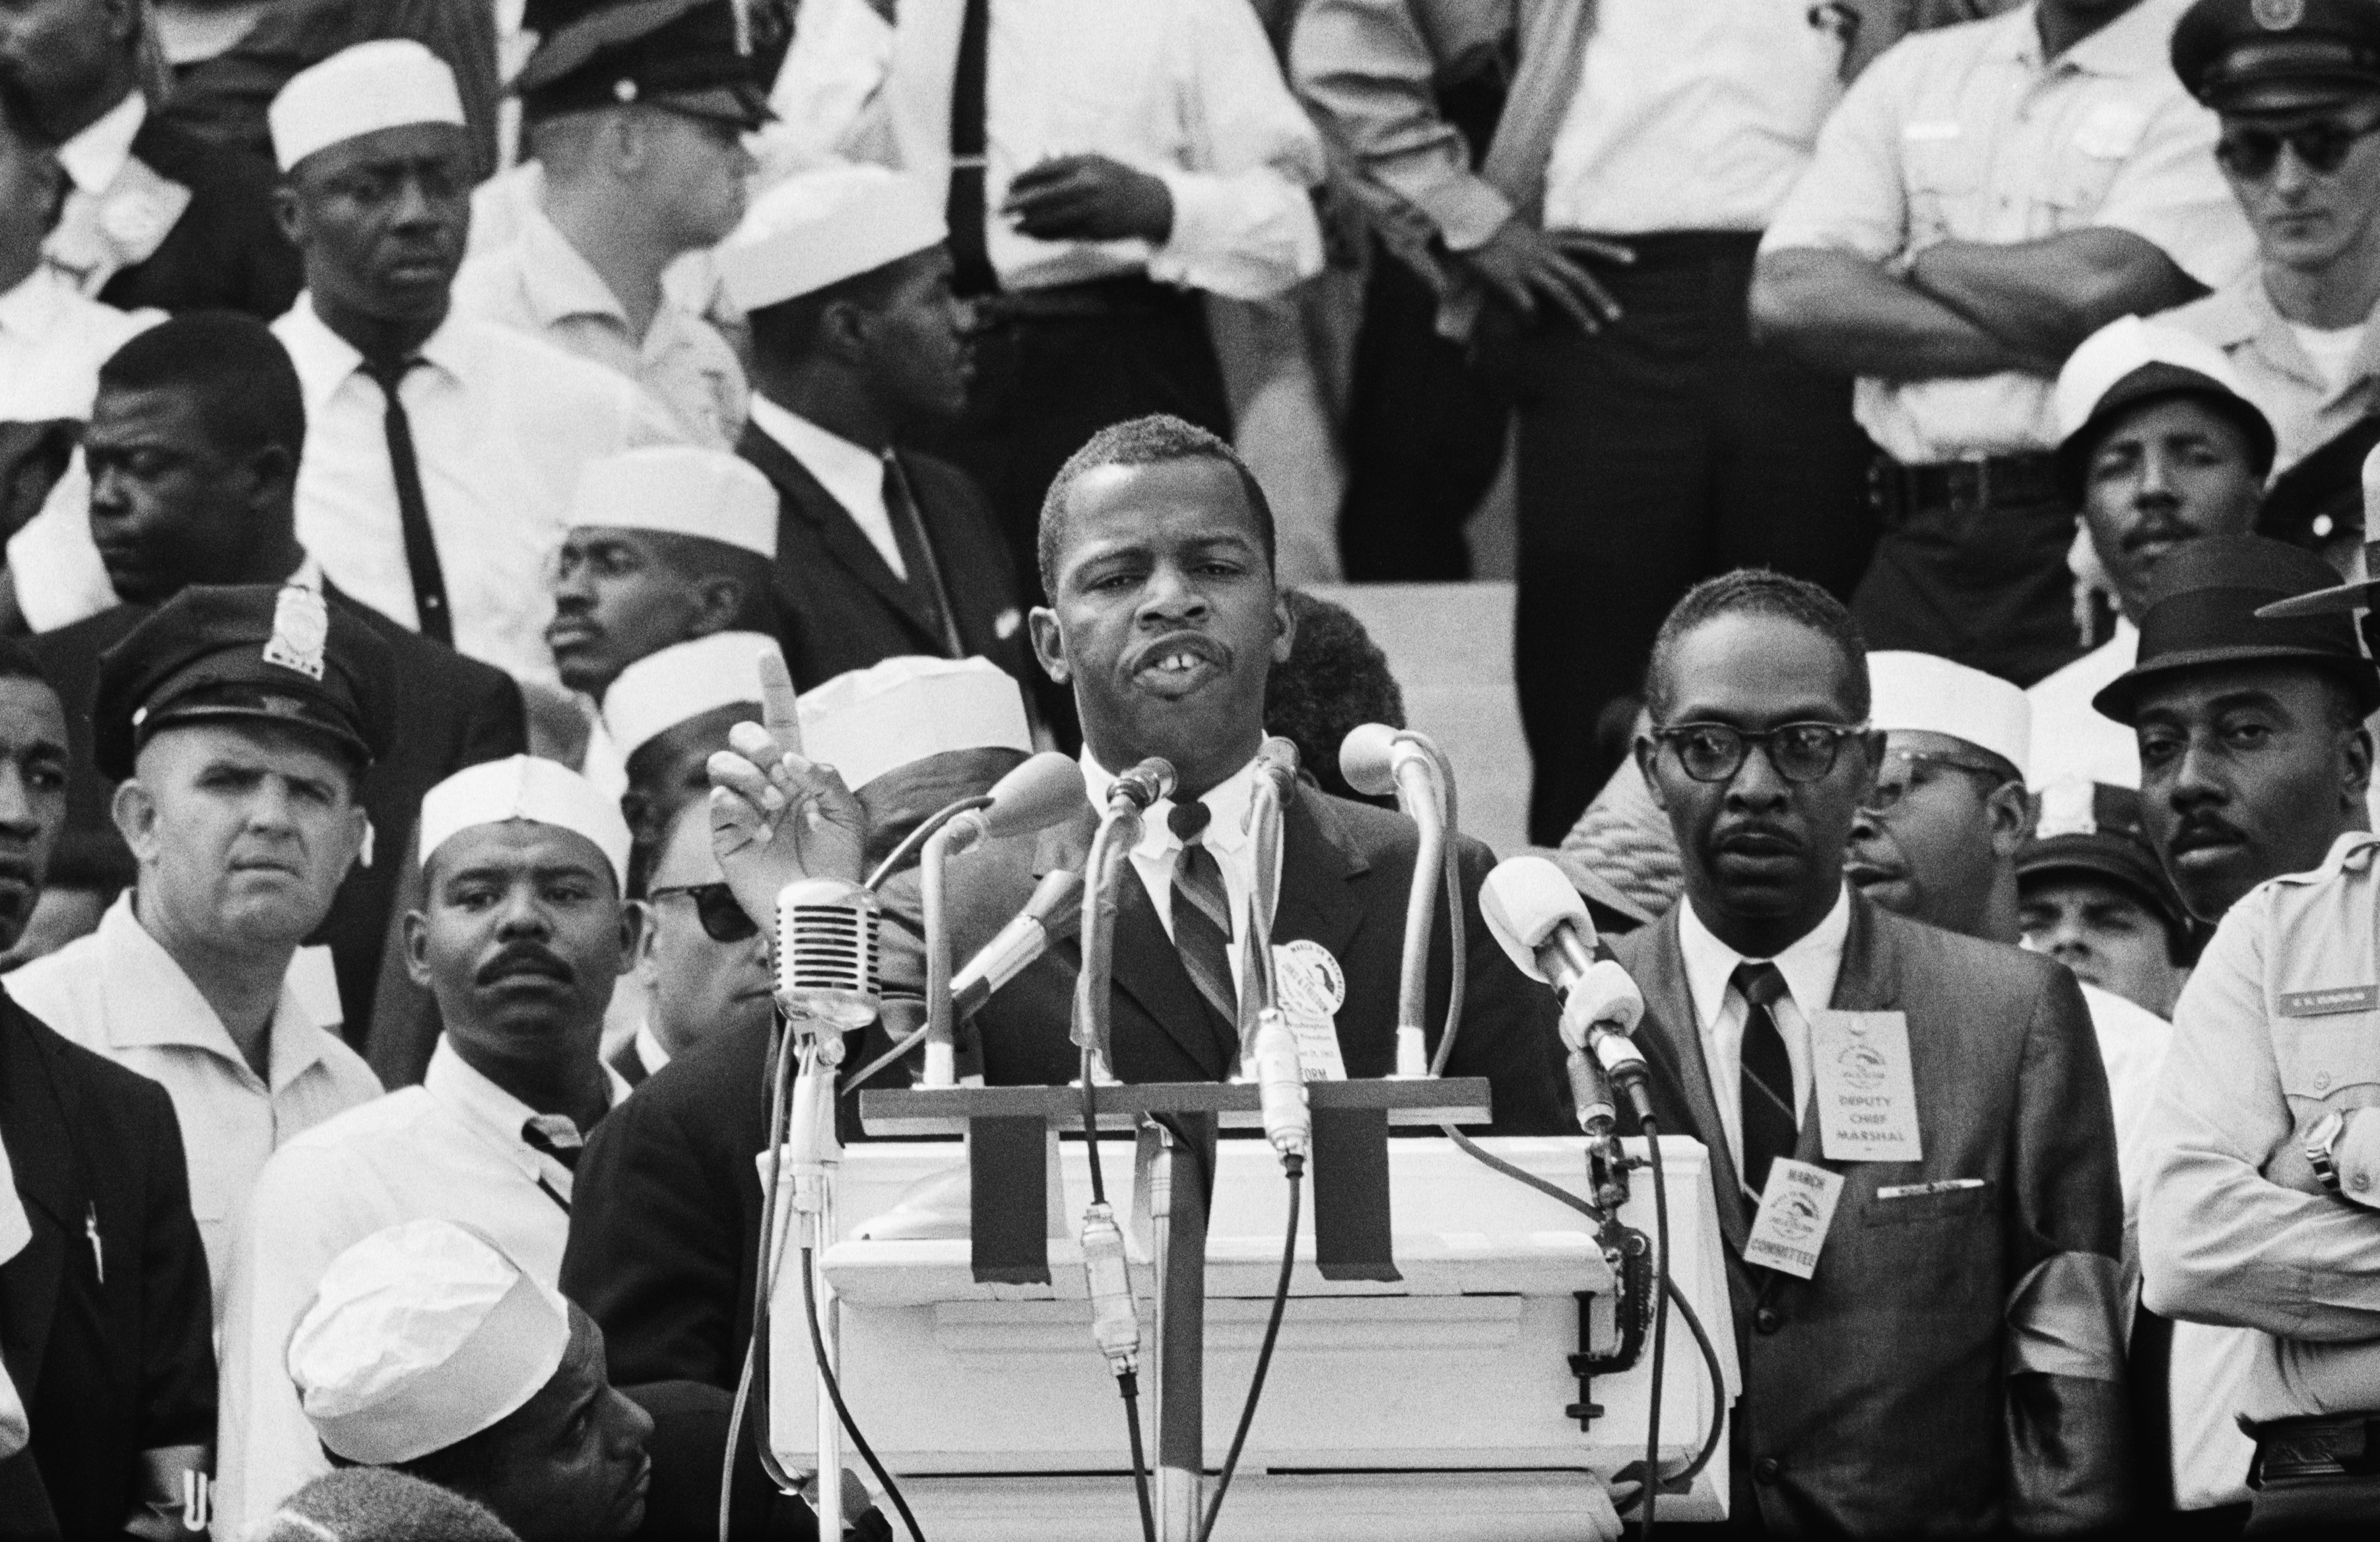 John Lewis and the beginning of an era